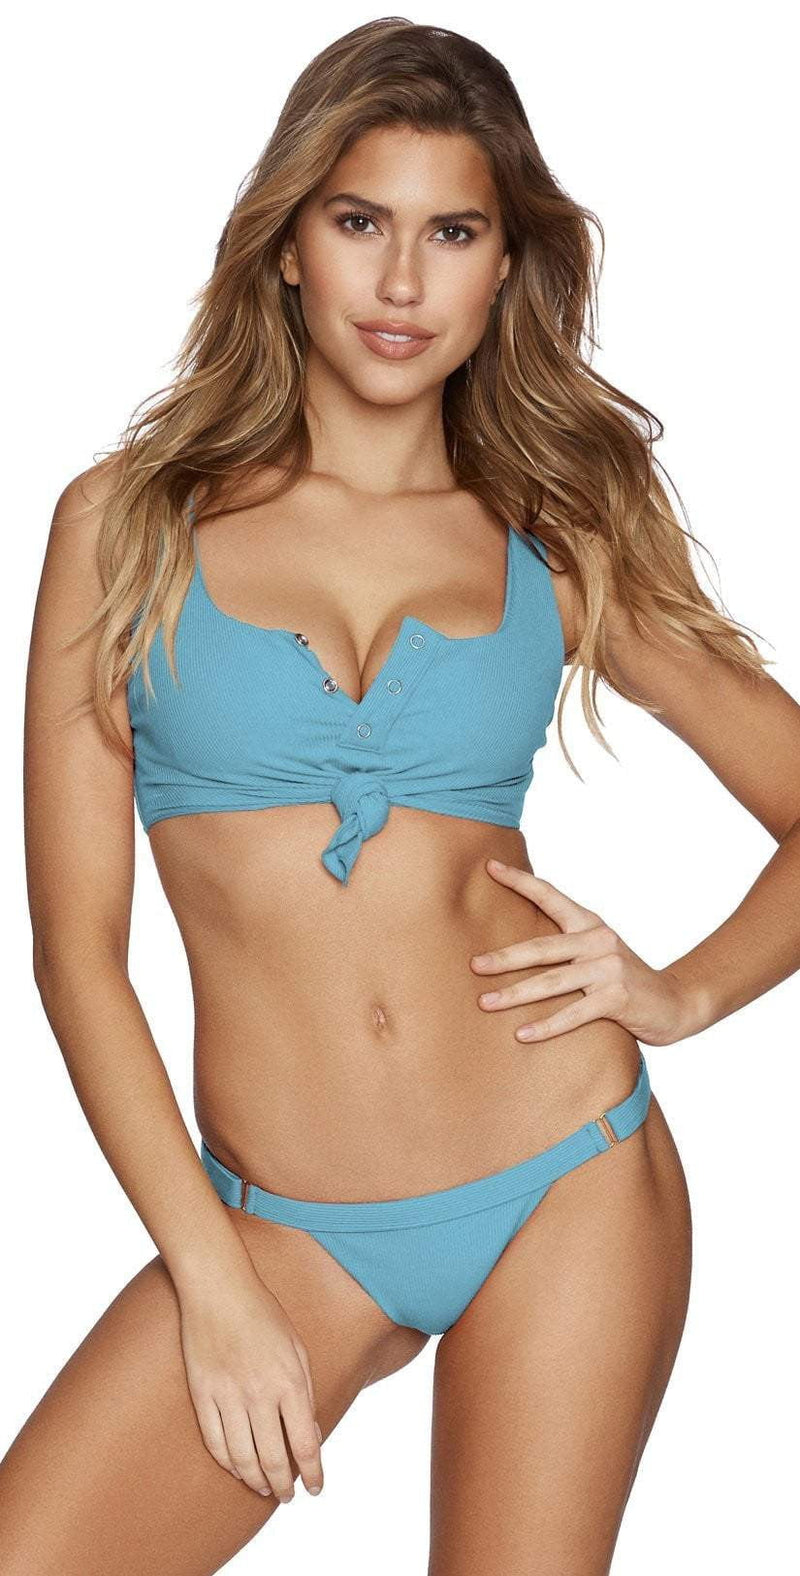 Beach Bunny Rib Tide Skimpy Bottom in Dusty Blue B17125B2-DSBL: